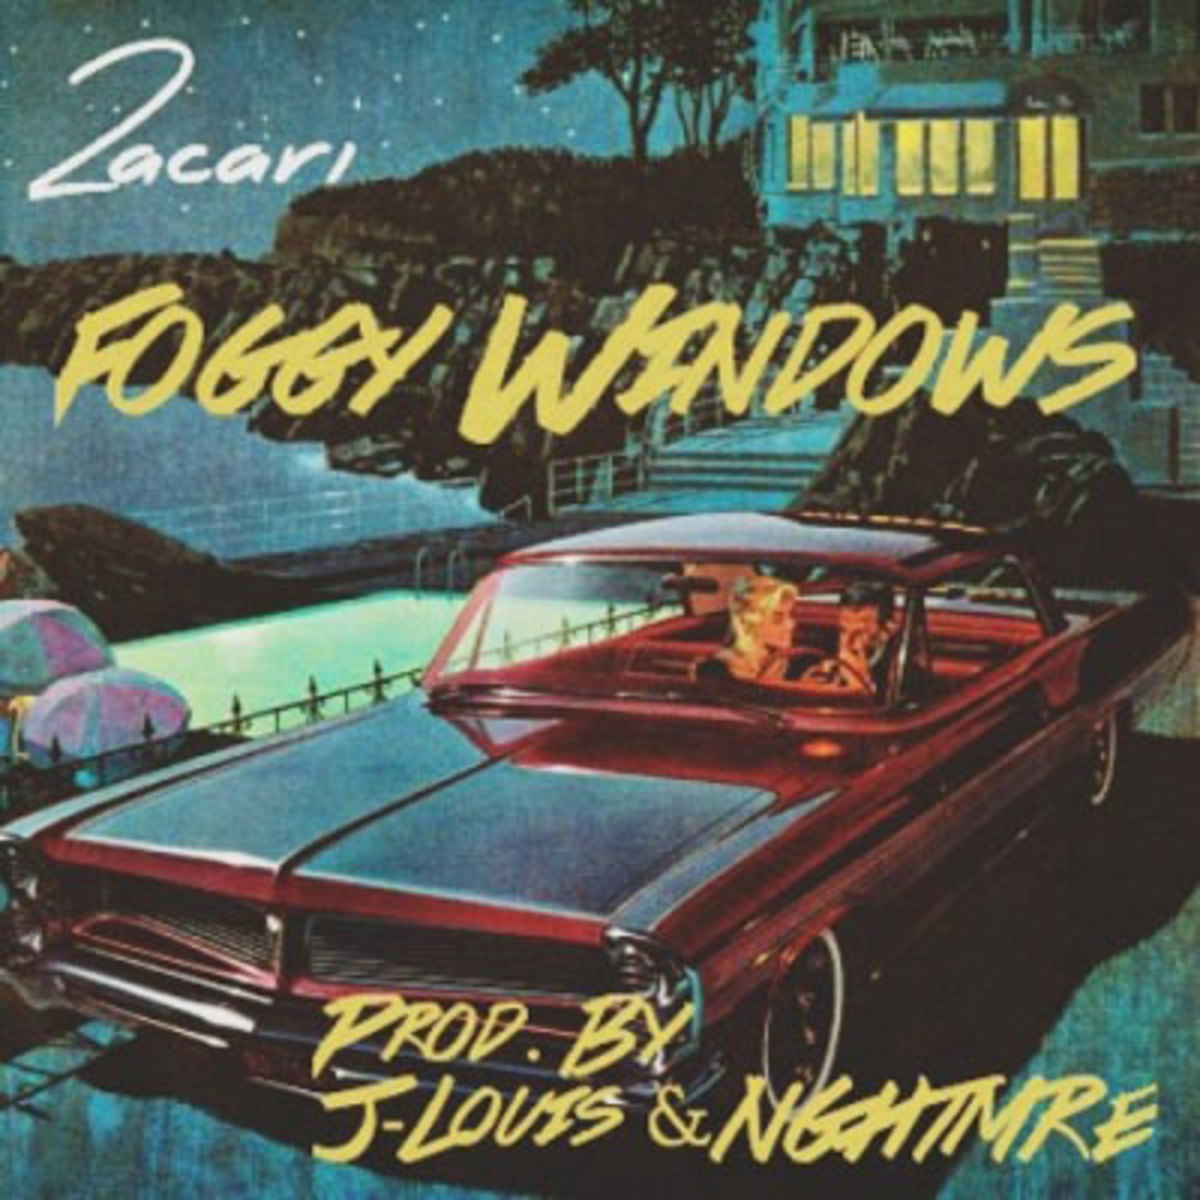 Zacari - Foggy Windows